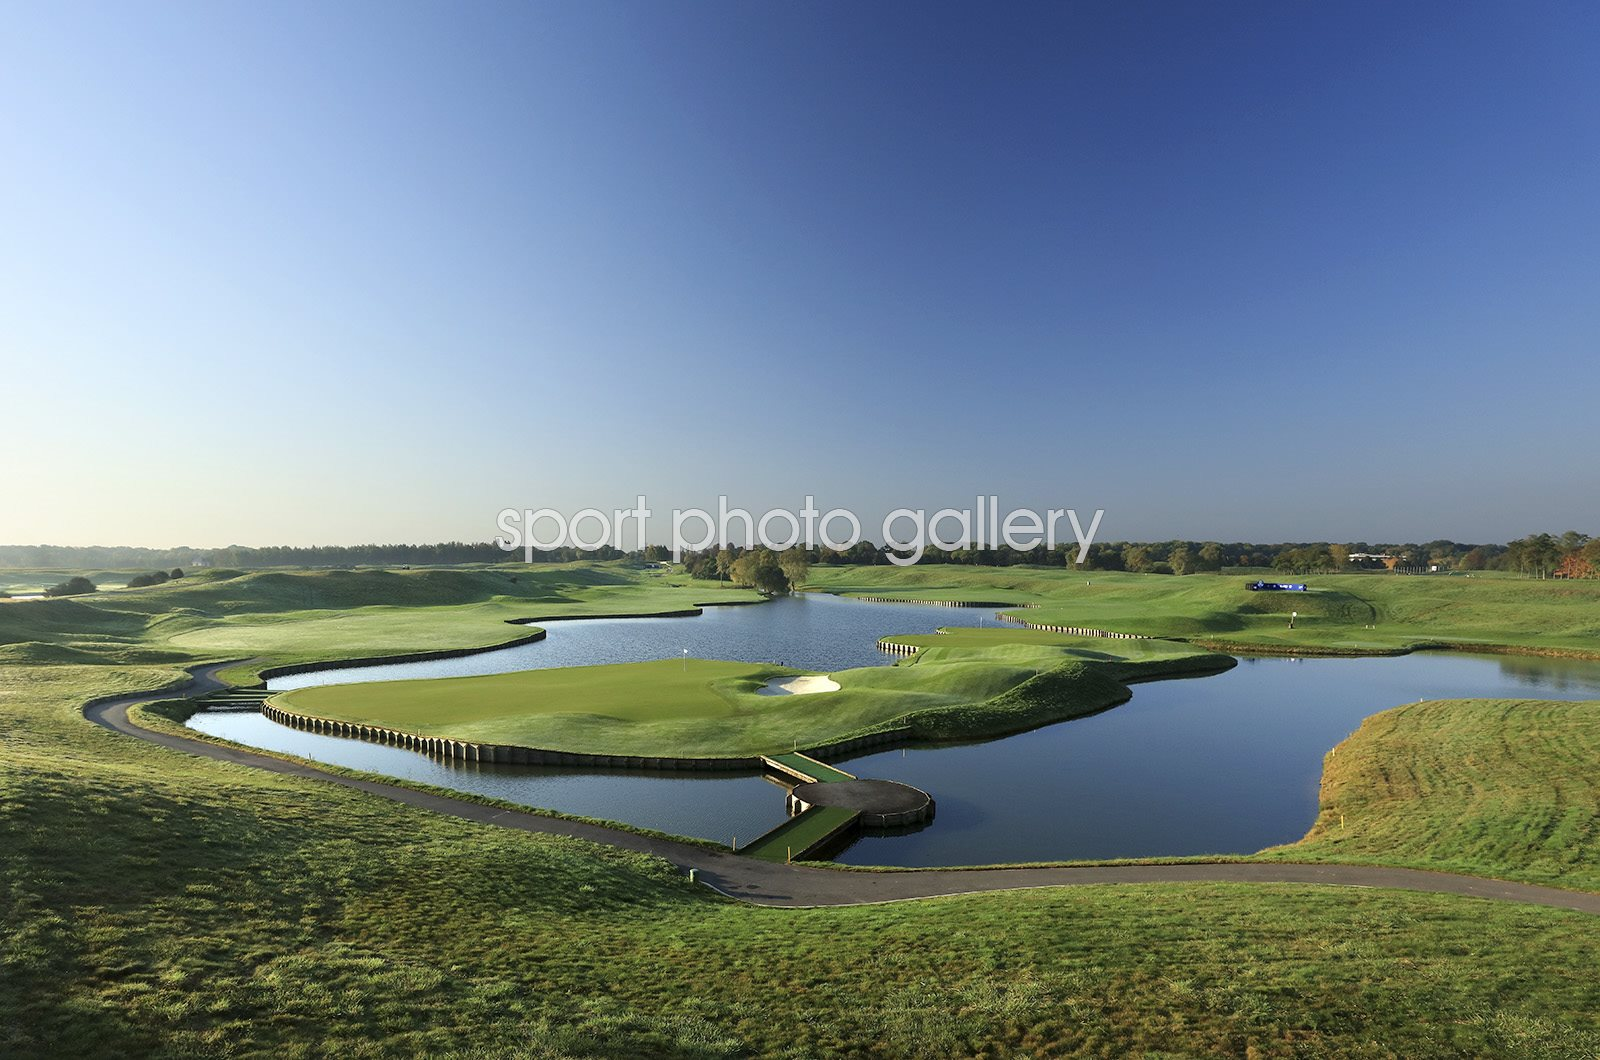 Golf National Albatross Course Ryder Cup 2018 Host Course 18th Hole